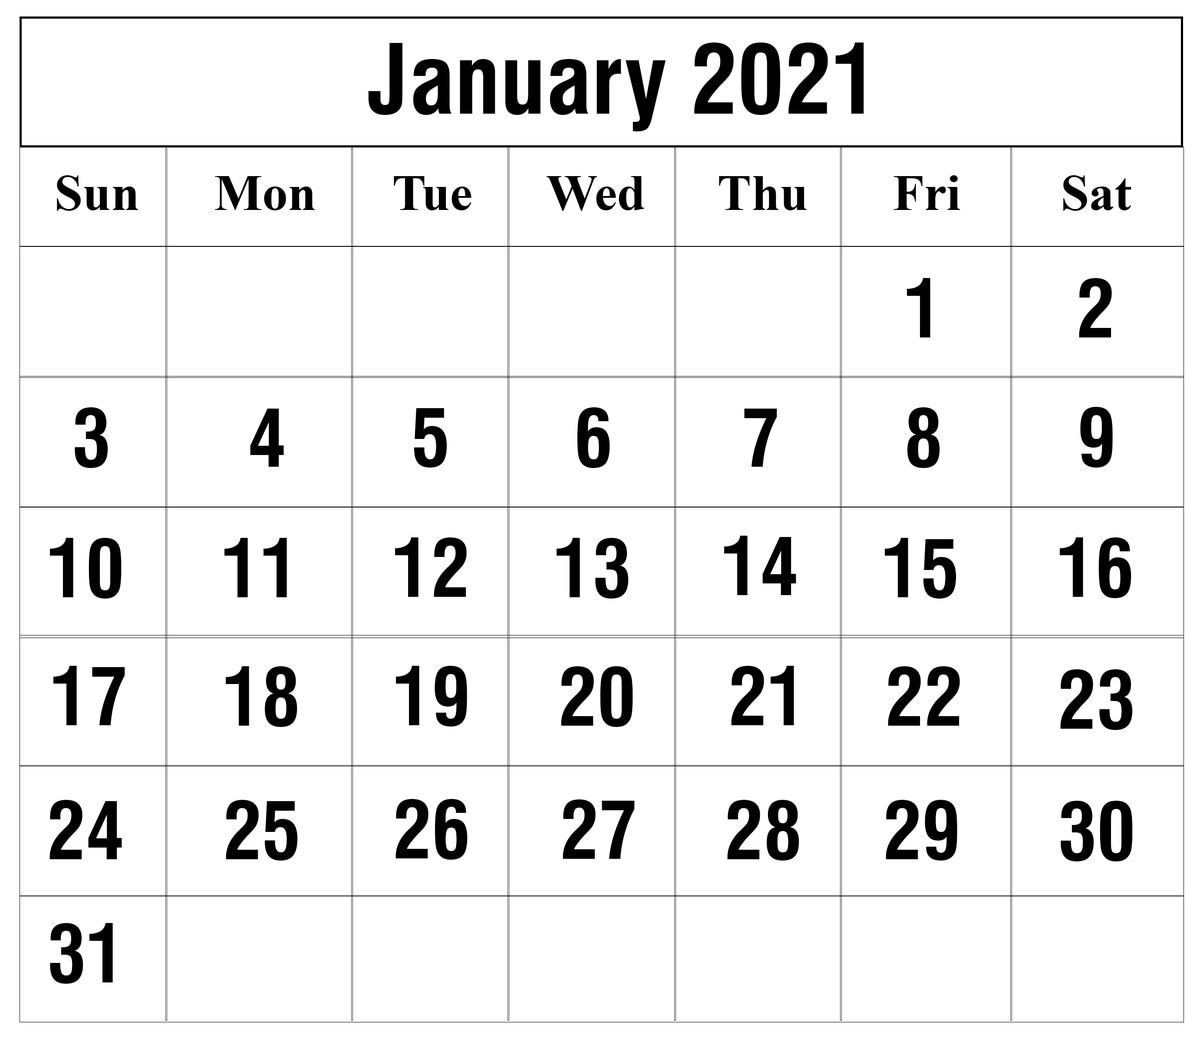 Calendar For January 2021 Project In 2020 | Calendar